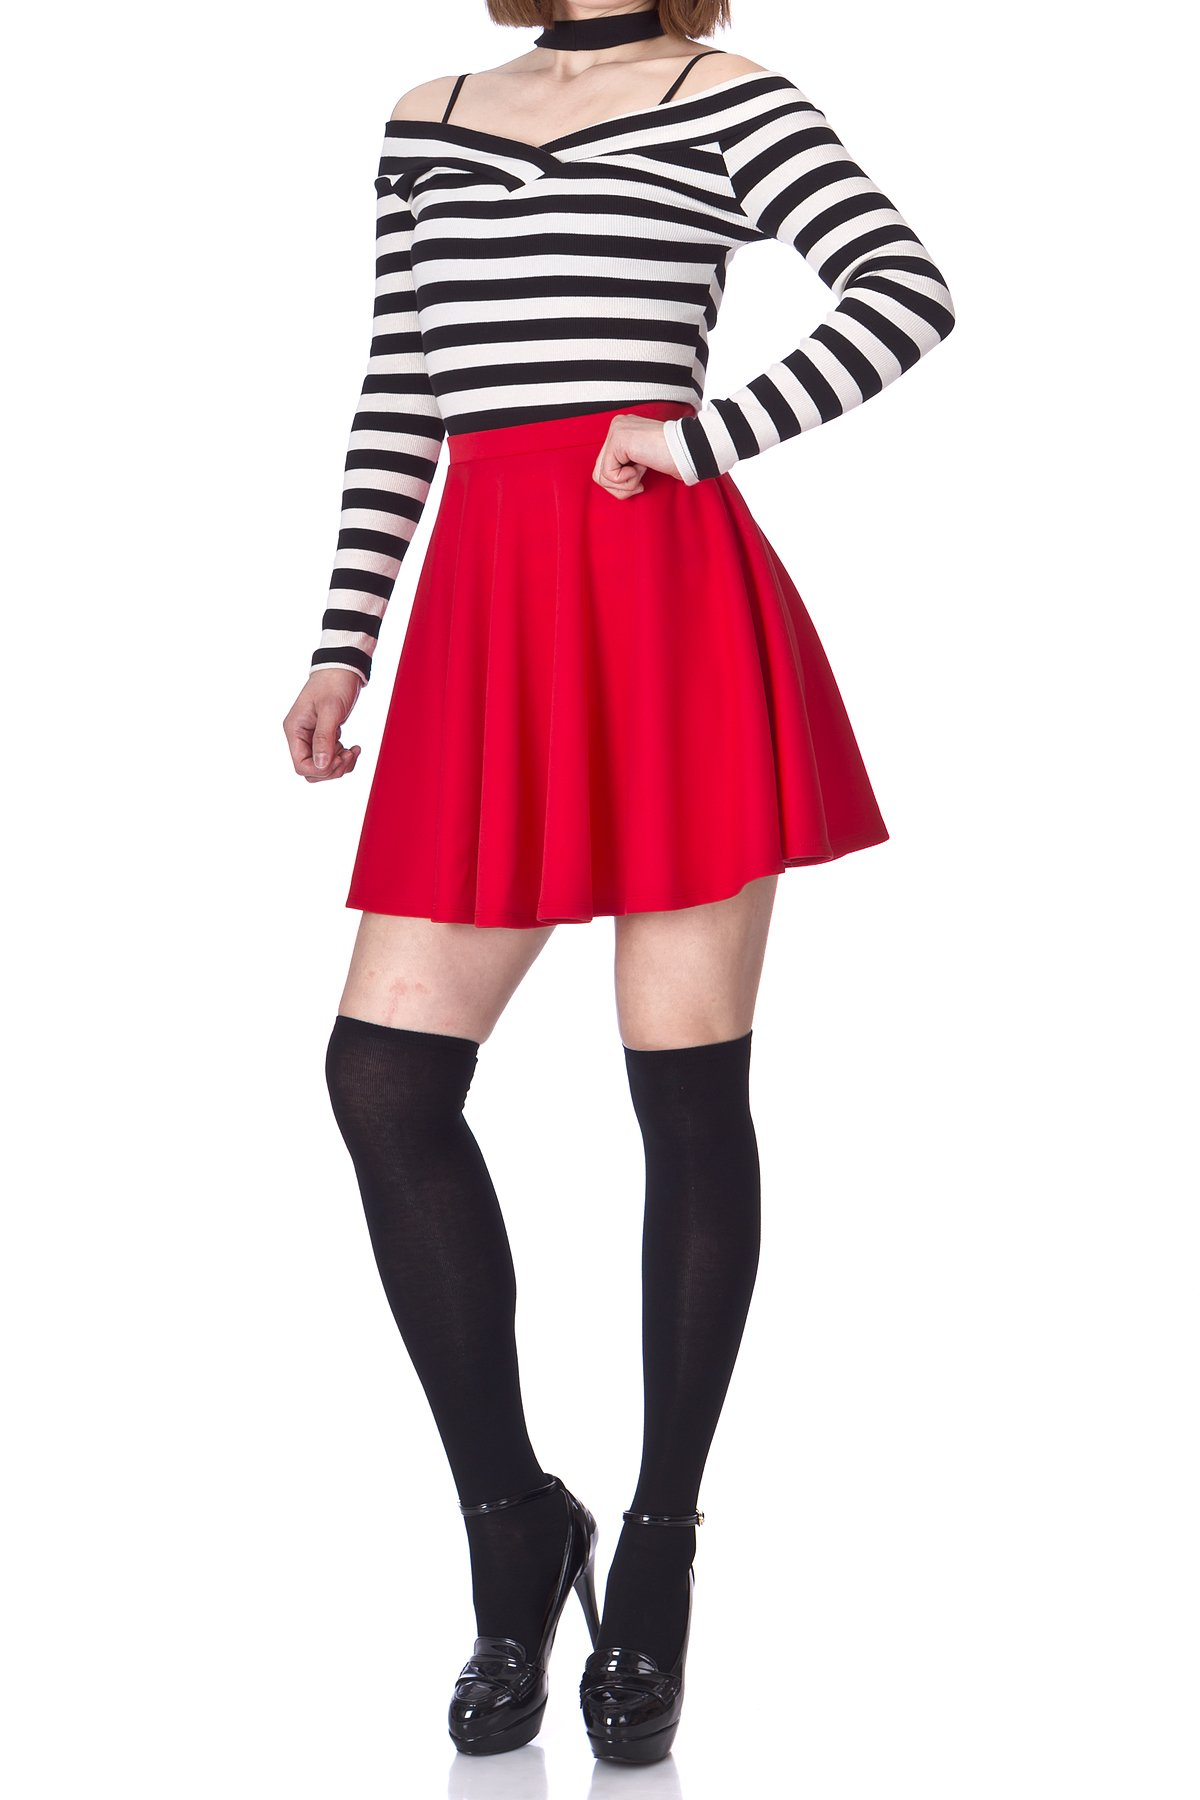 Flouncy High Waist A line Full Flared Circle Swing Dance Party Casual Skater Short Mini Skirt Red 04 2